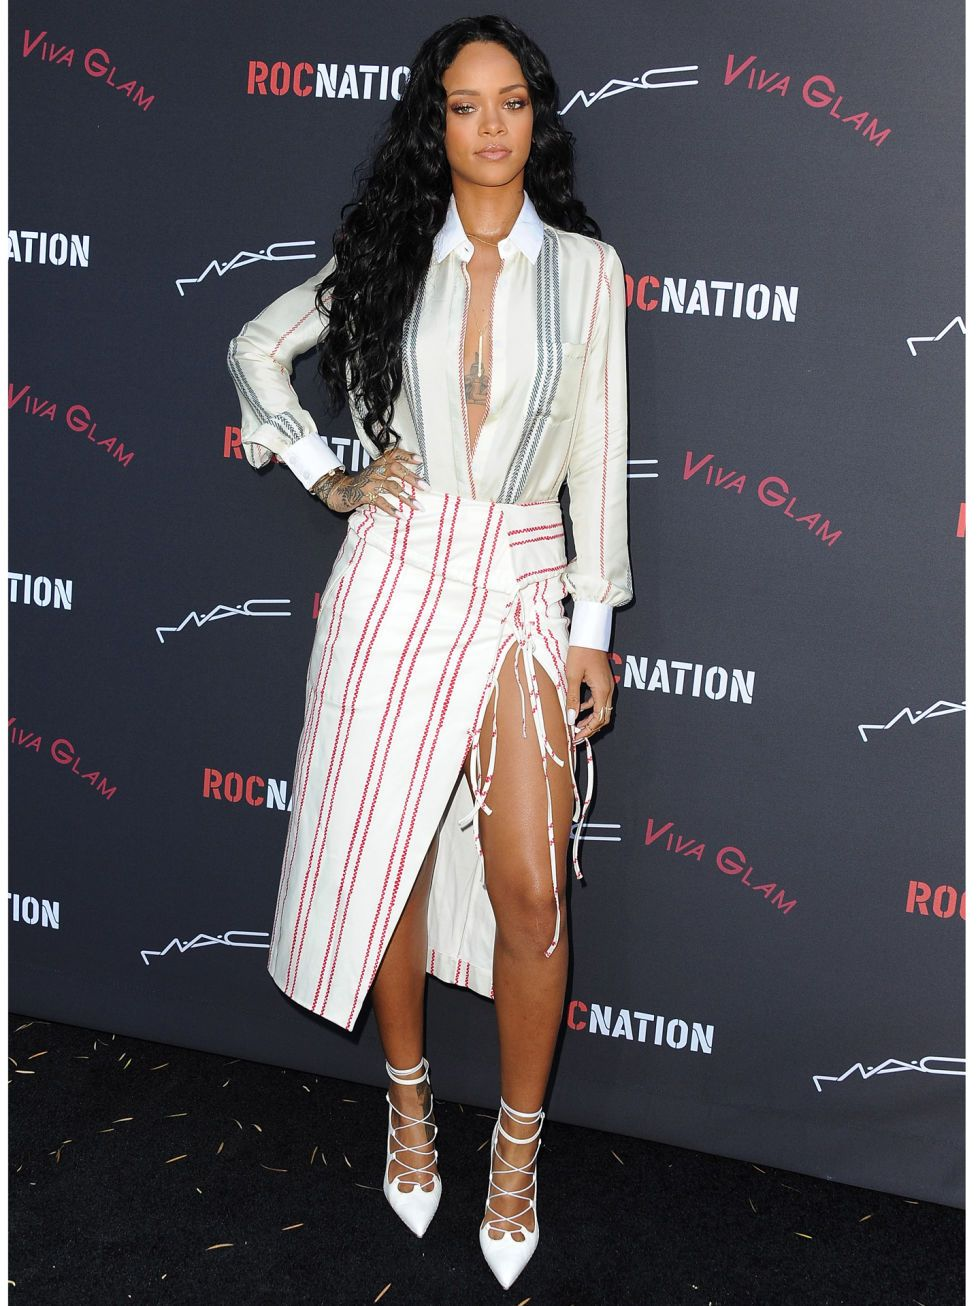 Rihanna Casual Fashion Style 2014 Images Galleries With A Bite